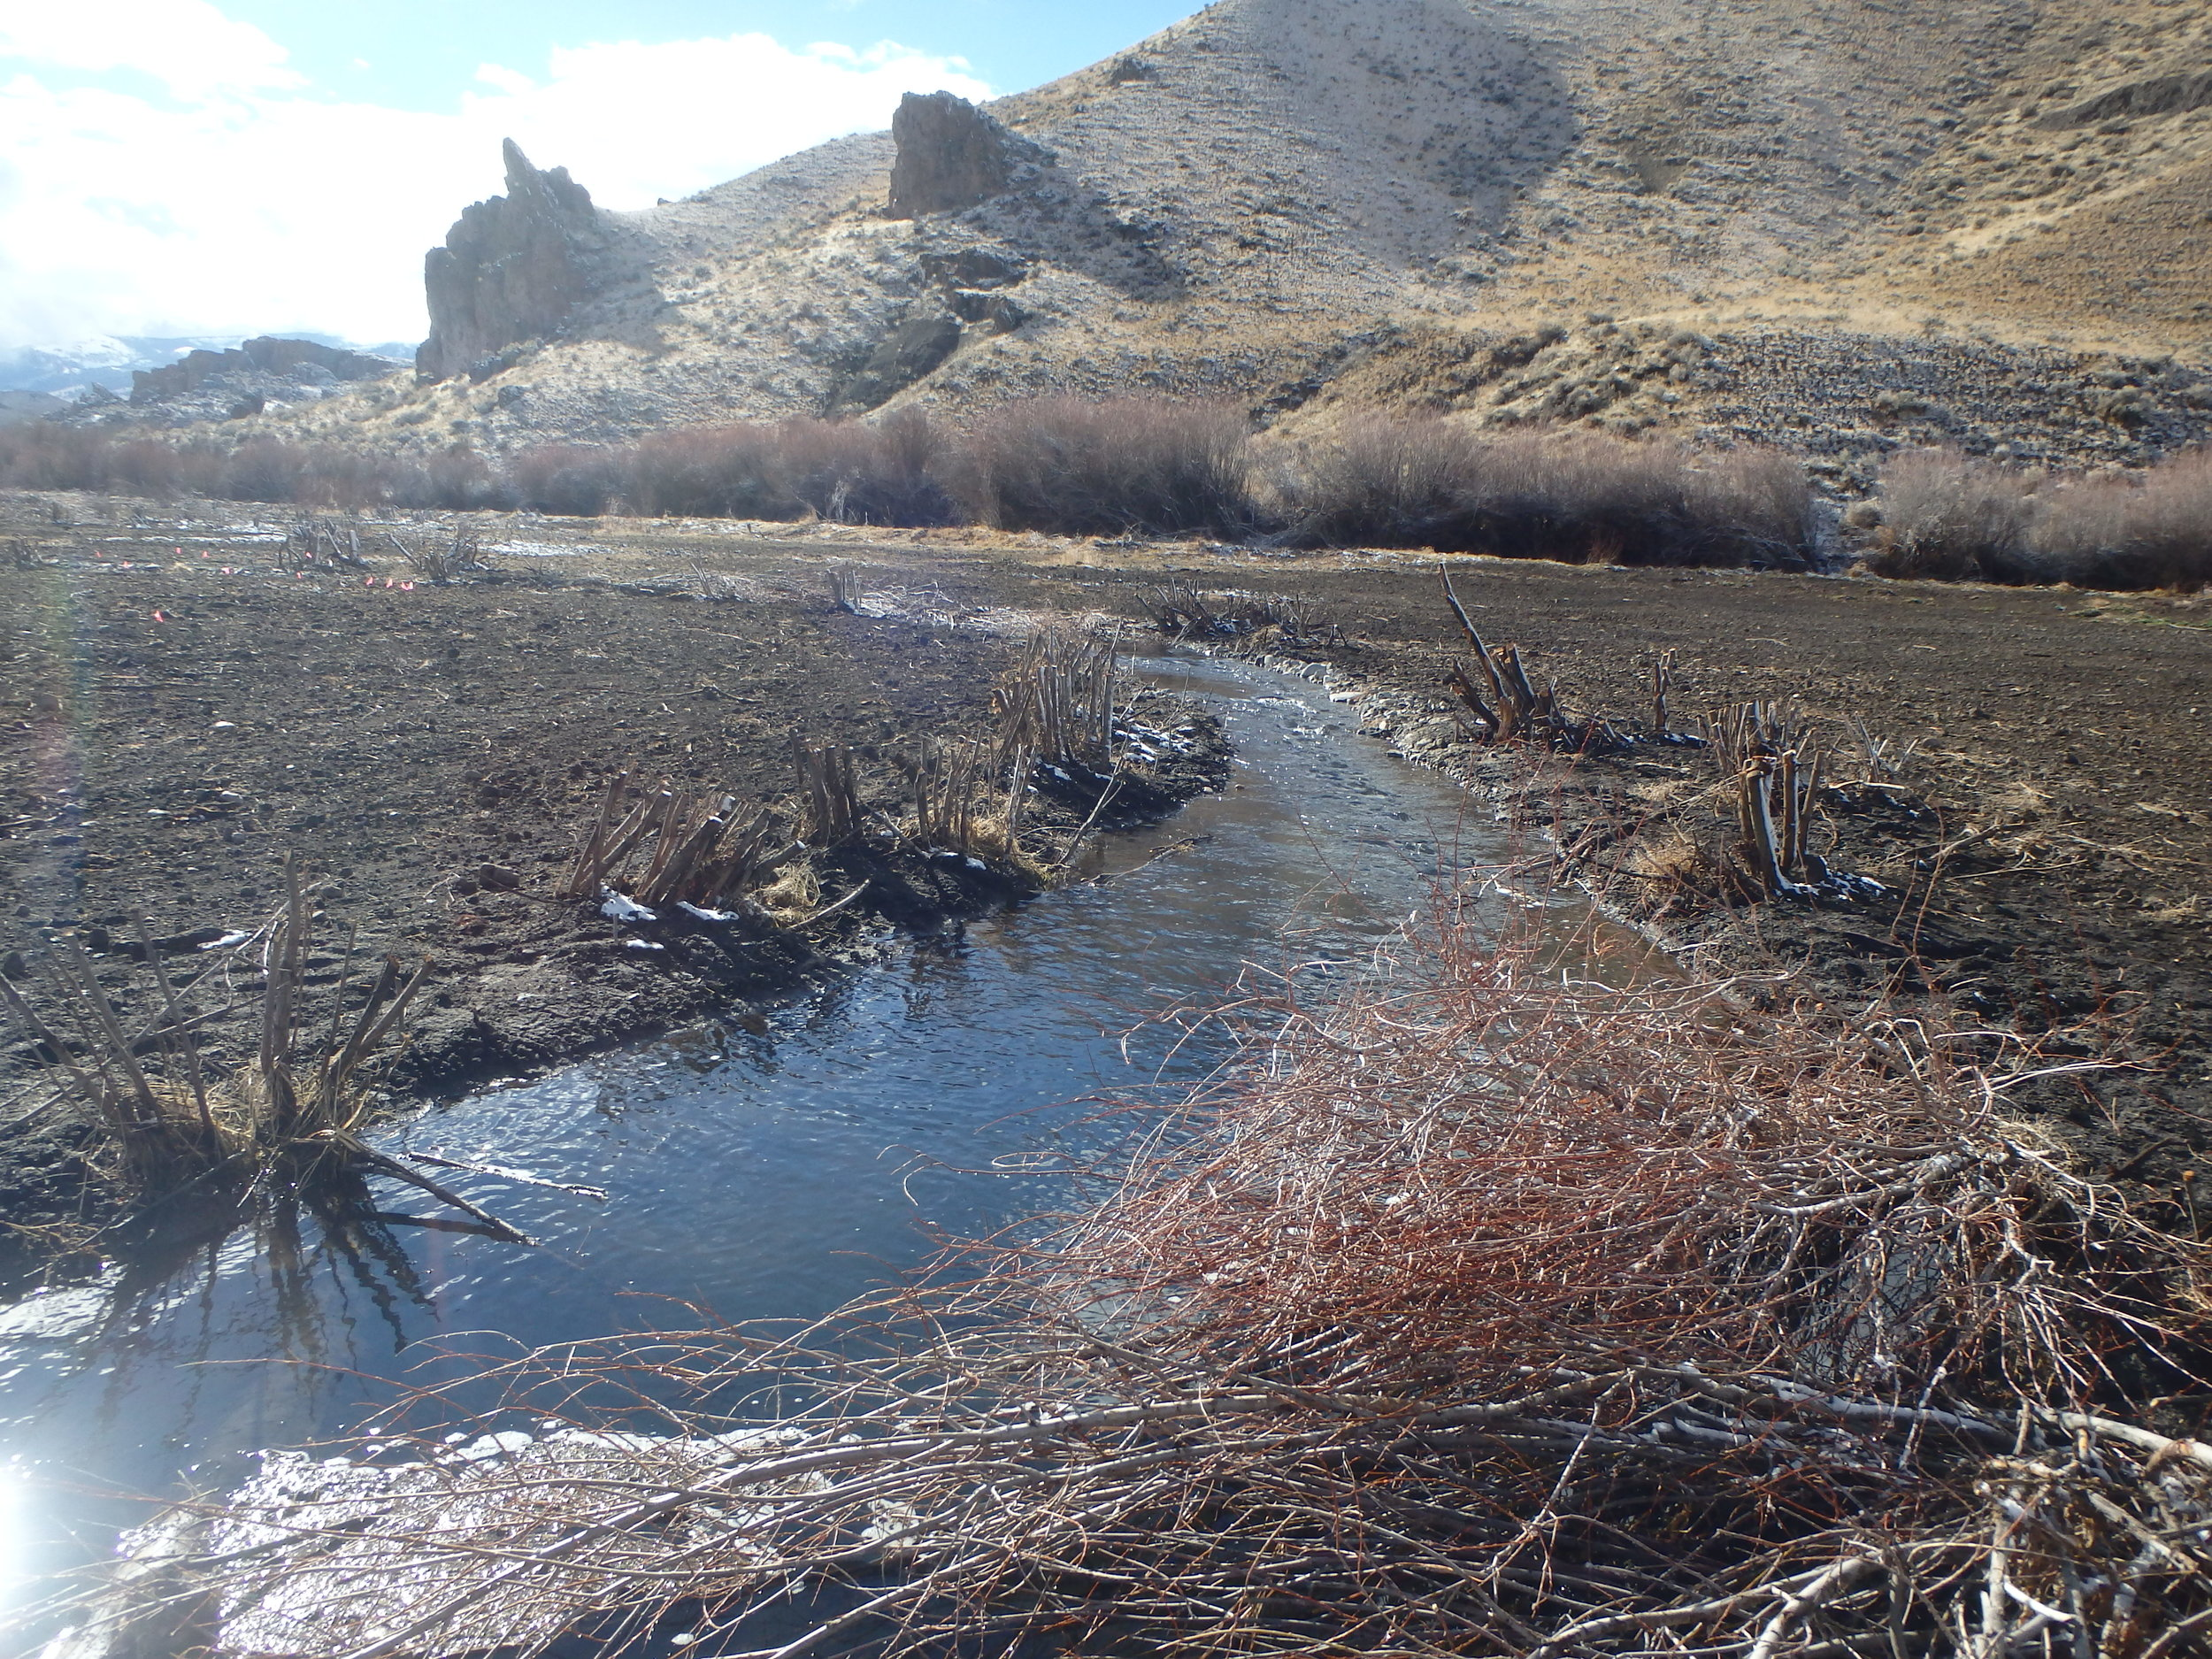 Immediately after construction: the stream flows through the meadow and complex aquatic features provide juvenile Chinook salmon over-winter habitat